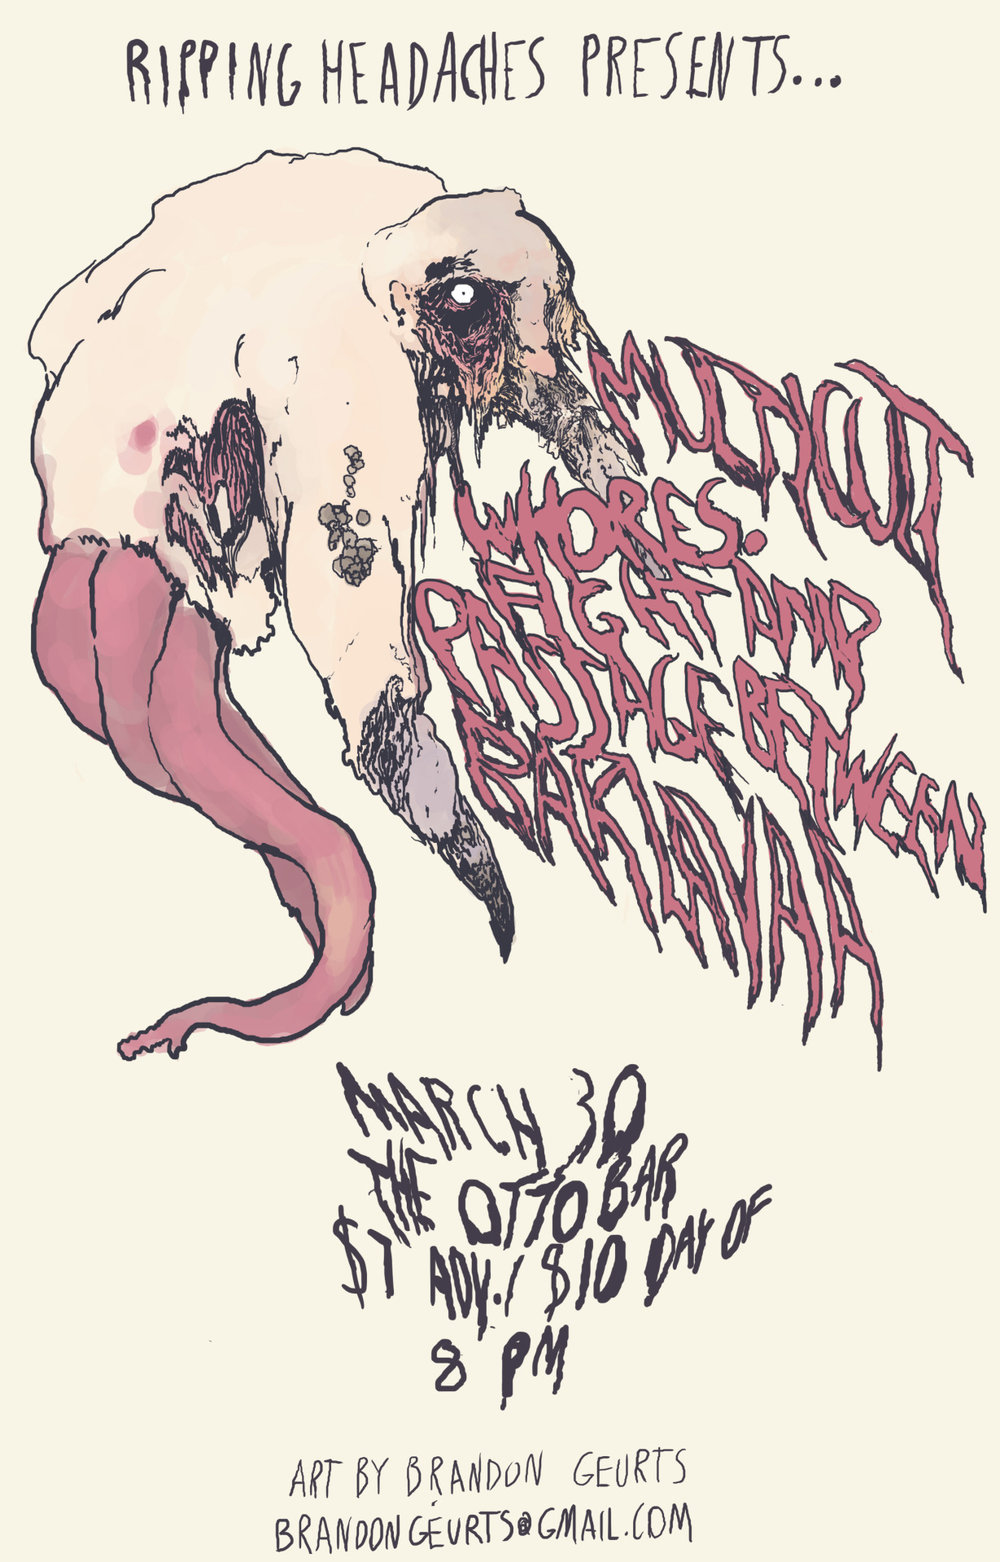 2014. Flyer for Fight Amp/Whores. at the Ottobar. Baltimore, MD.